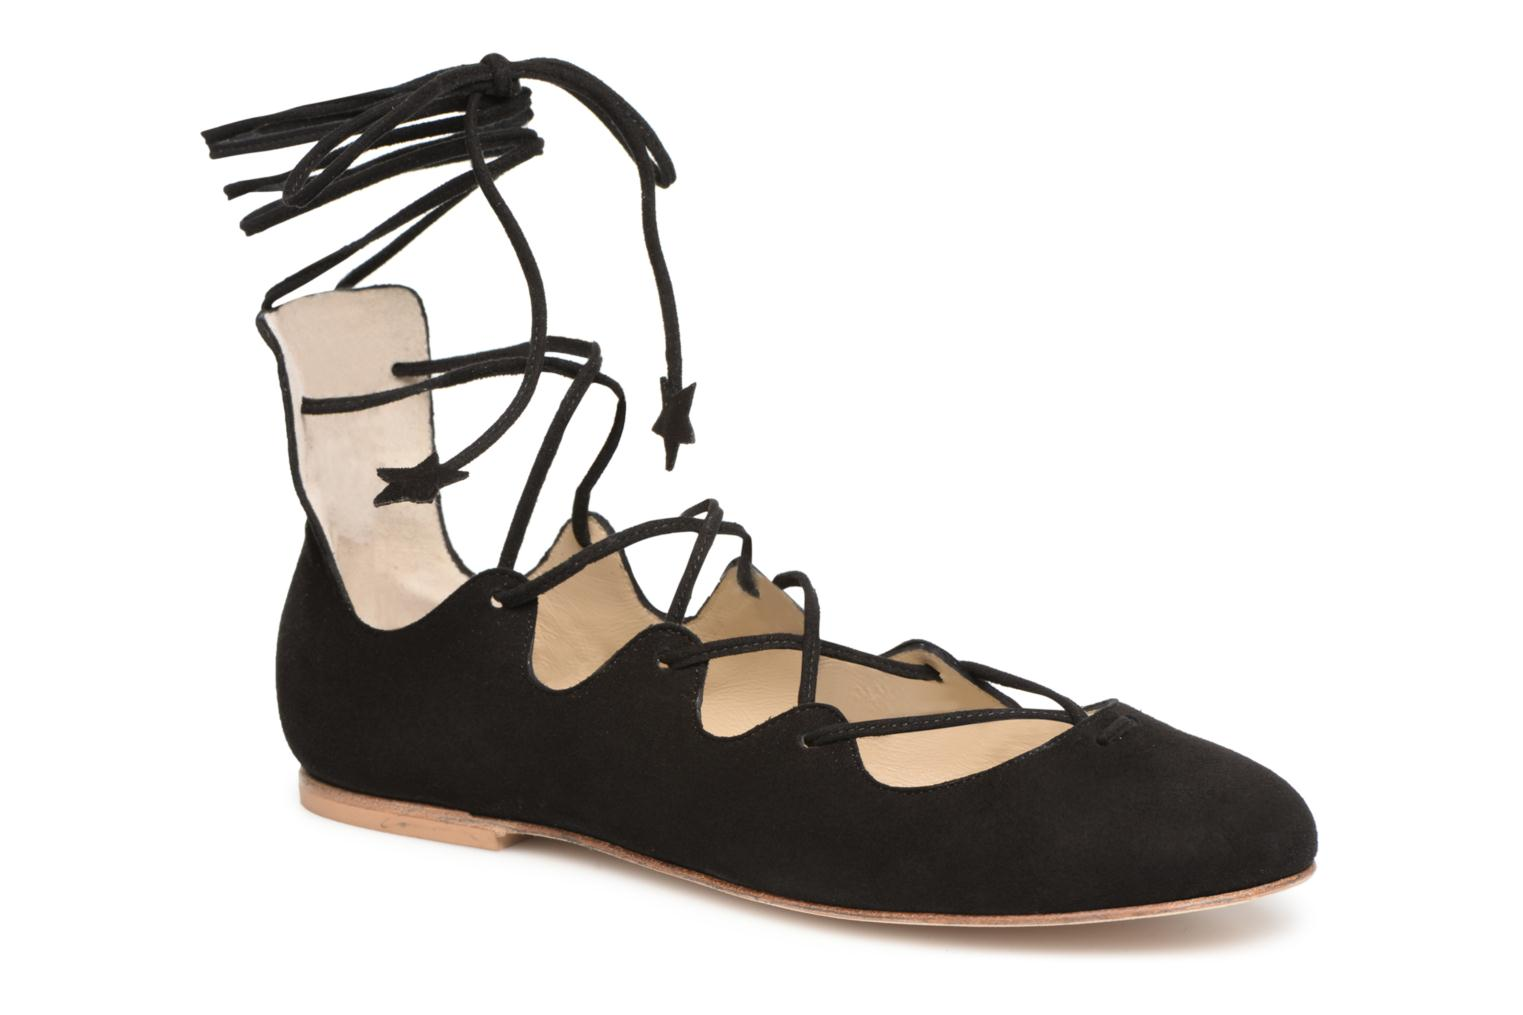 Marques Chaussure luxe femme Anniel femme 1915 CAMS 10